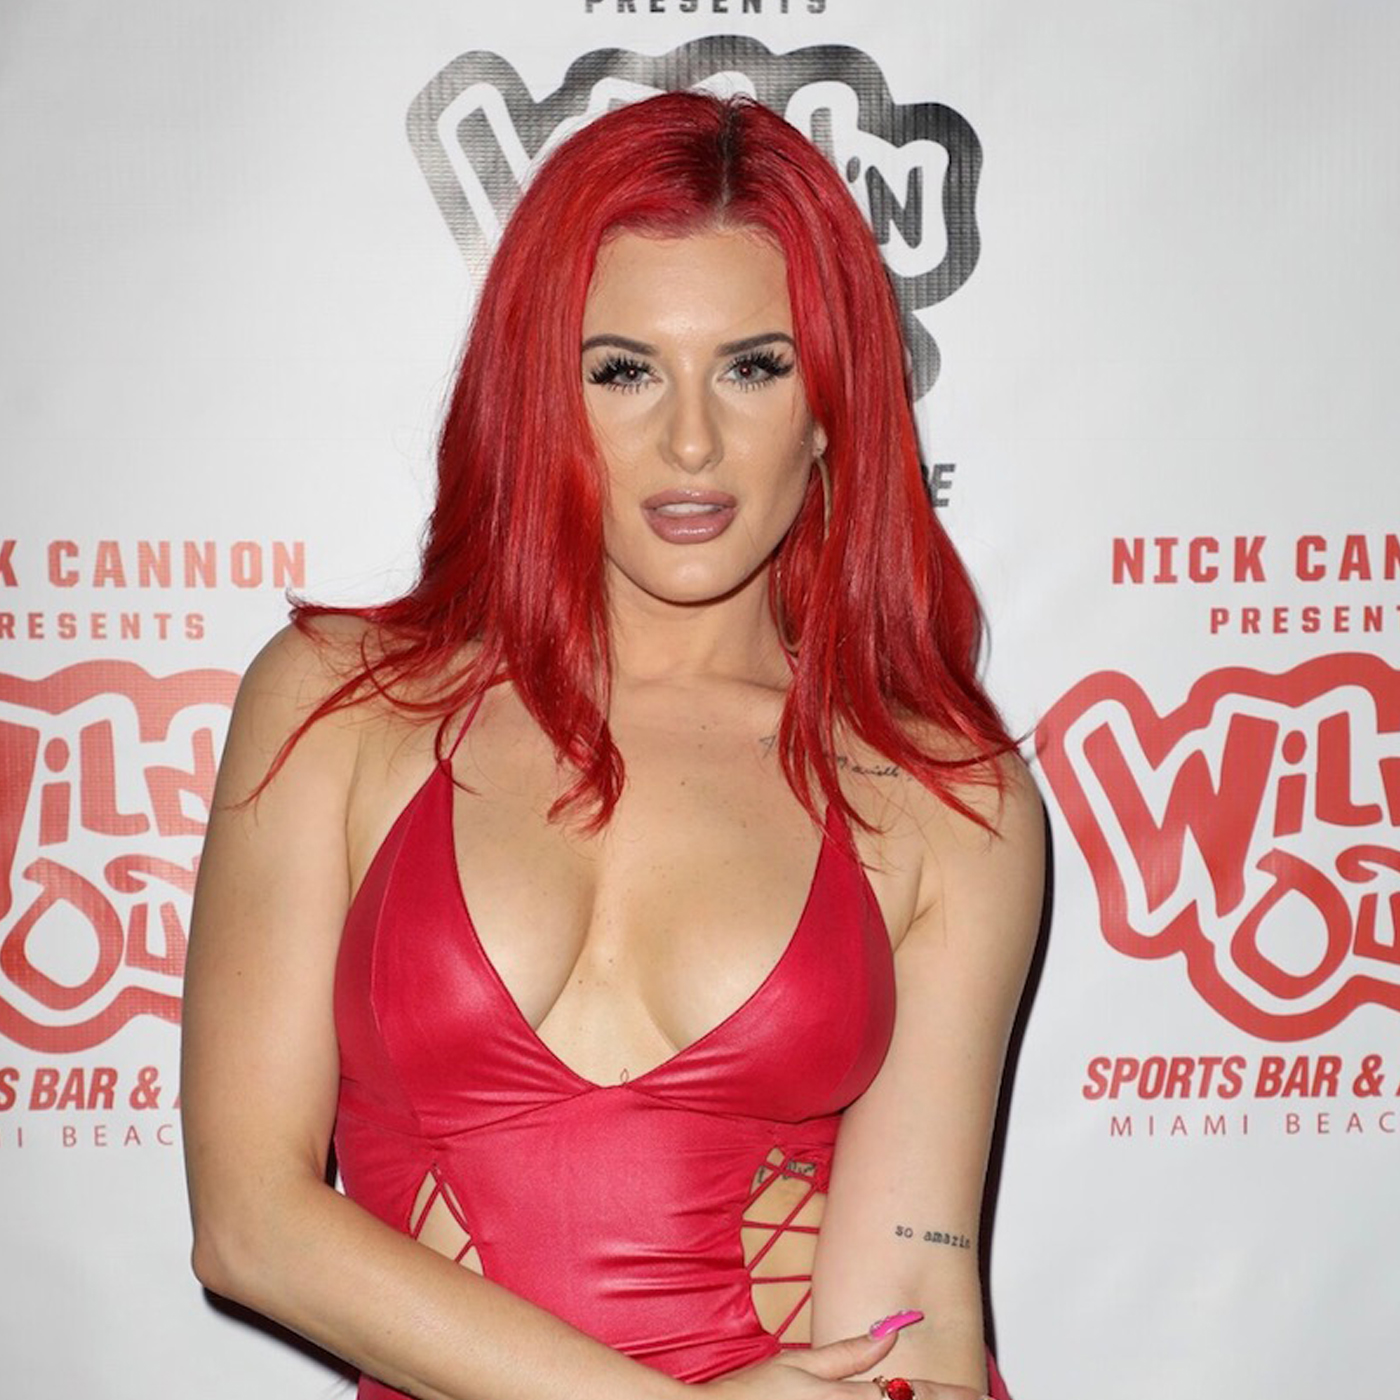 Photos Justina Valentine nude (84 images), Boobs